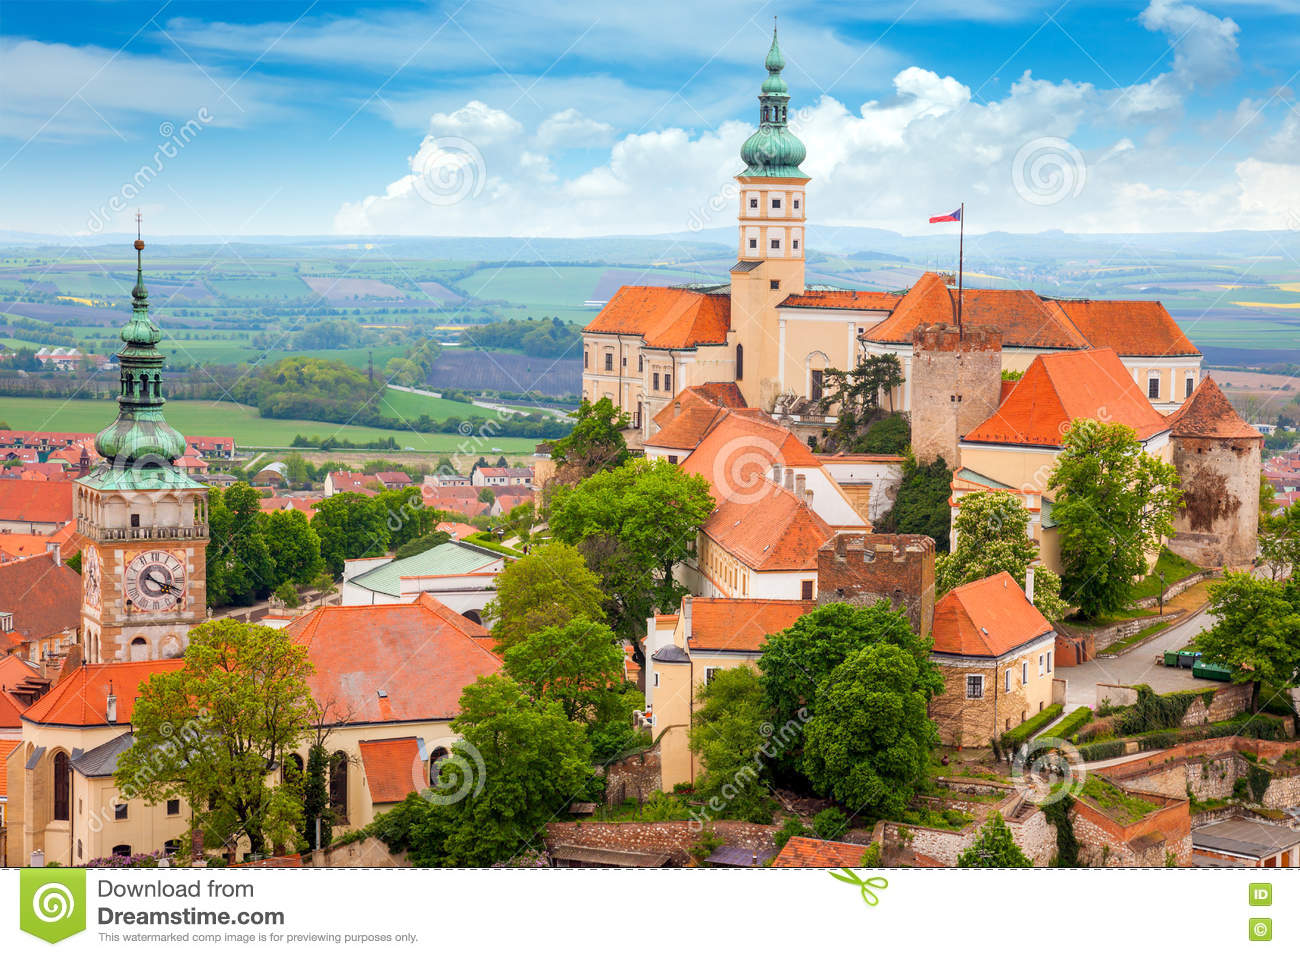 Old European Town with castle and clock